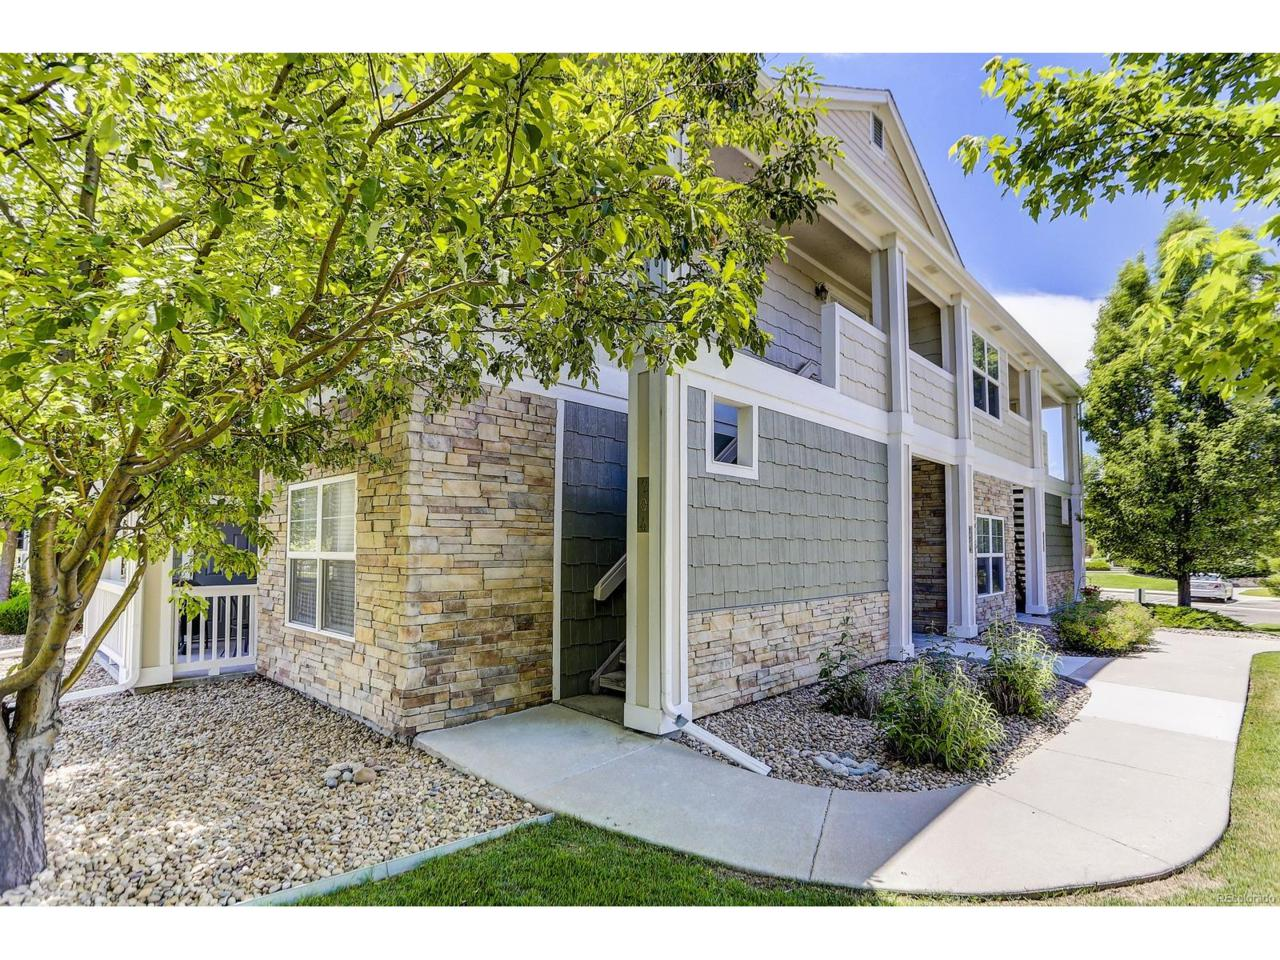 3210 Boulder Circle #204, Broomfield, CO 80023 (MLS #4352099) :: 8z Real Estate